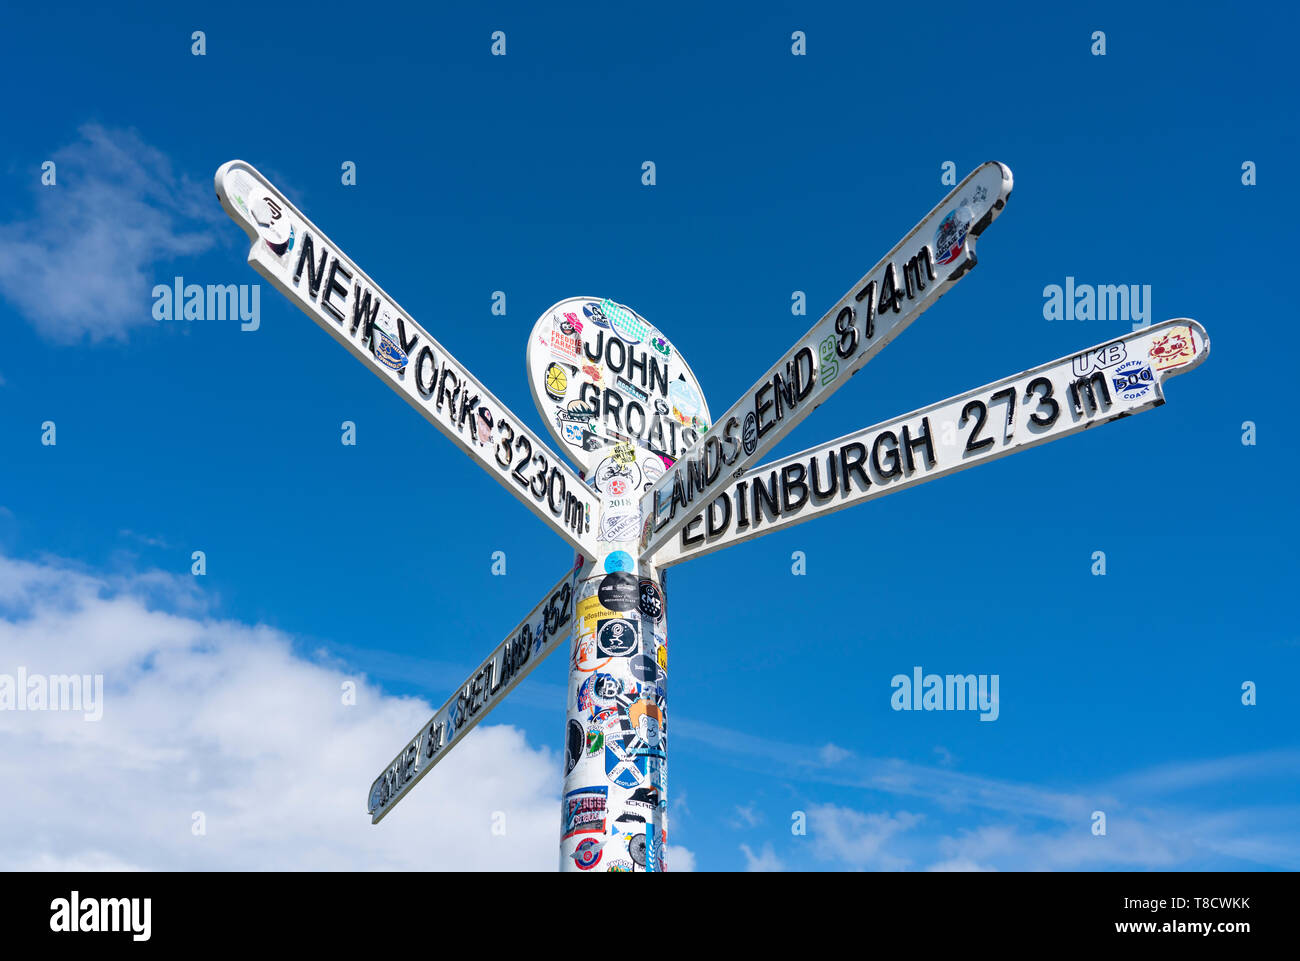 Signpost with distances at John O' Groats on  the North Coast 500 scenic driving route in northern Scotland, UK - Stock Image